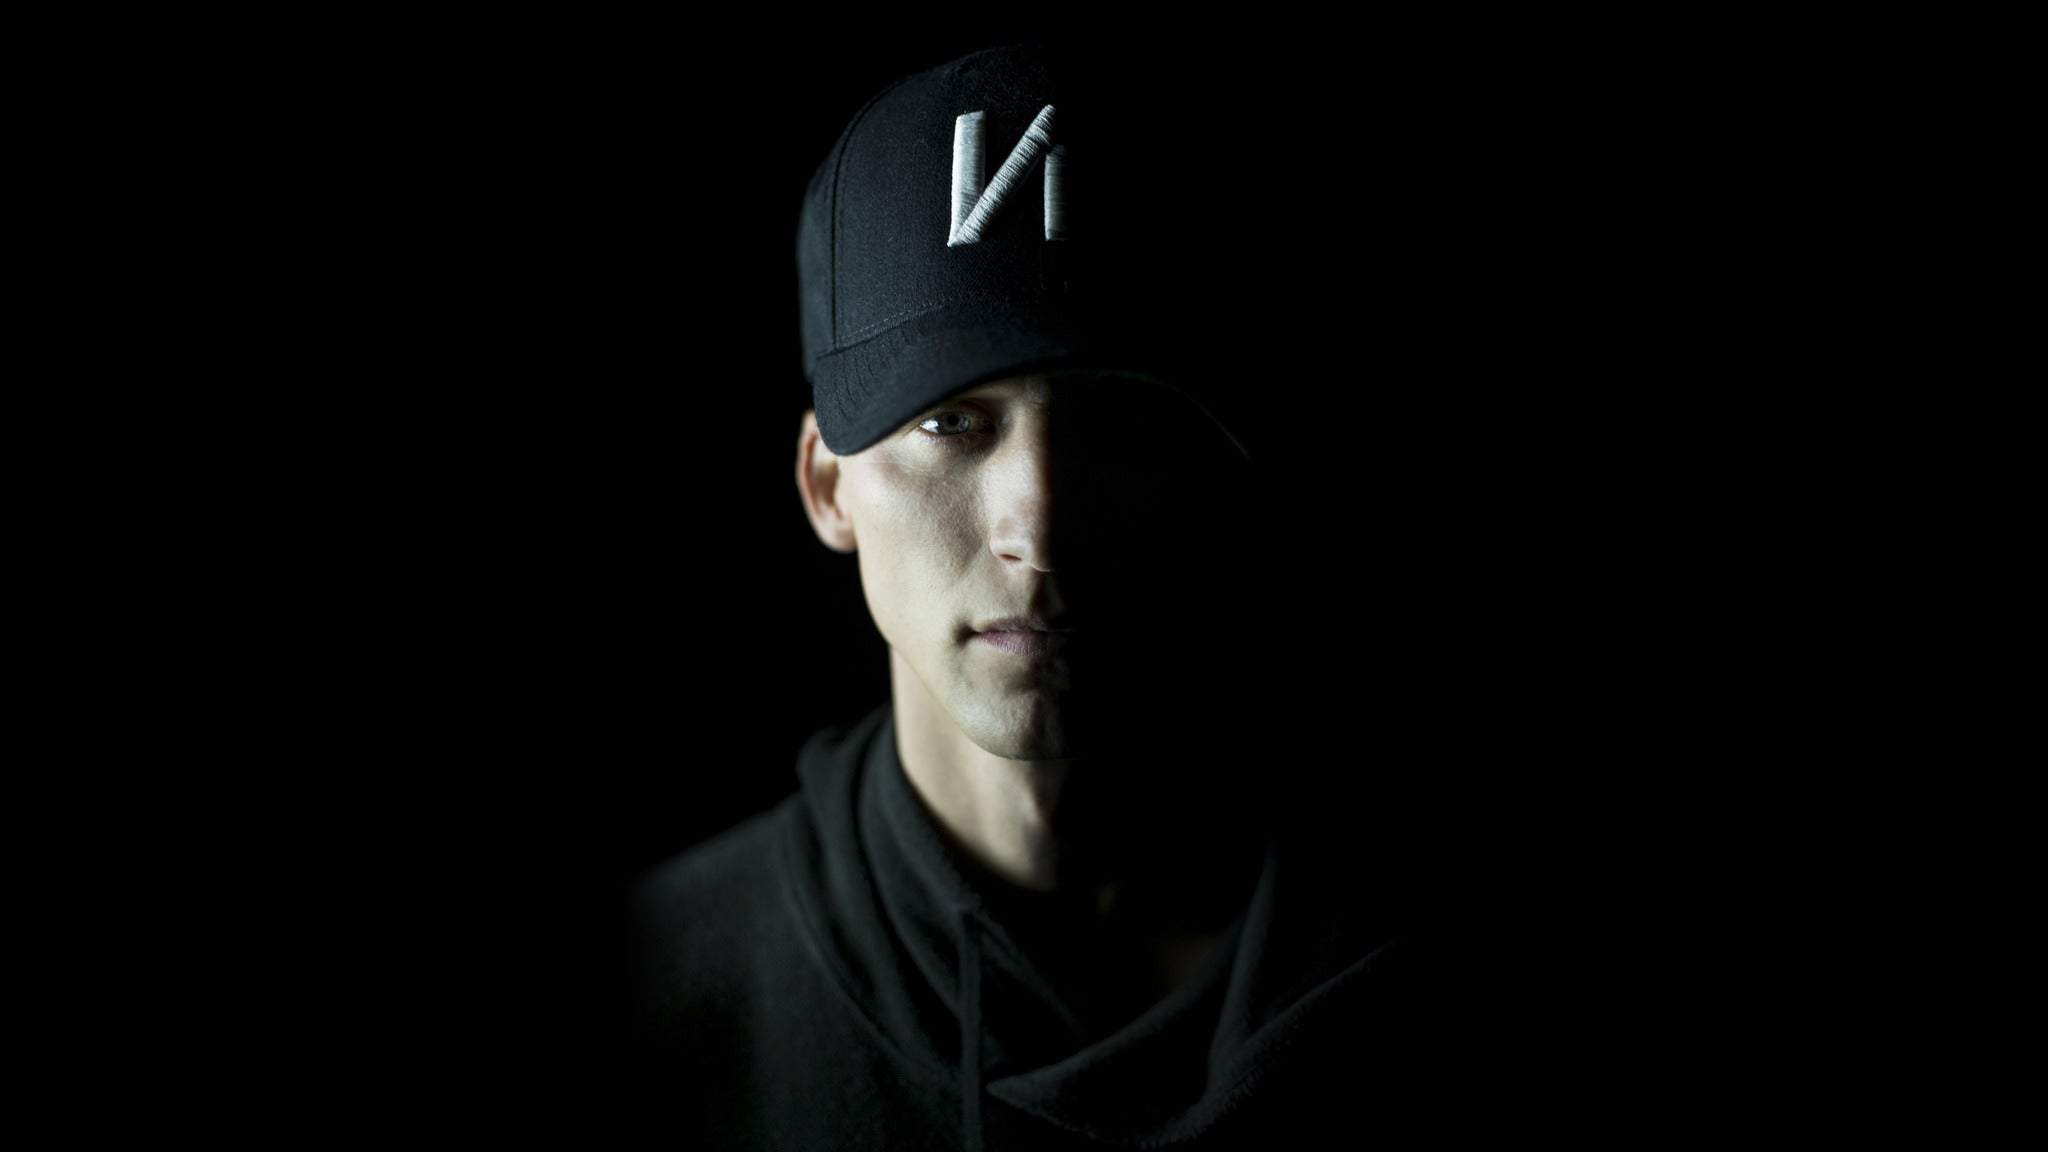 NF - Perception Tour at The Ritz Ybor